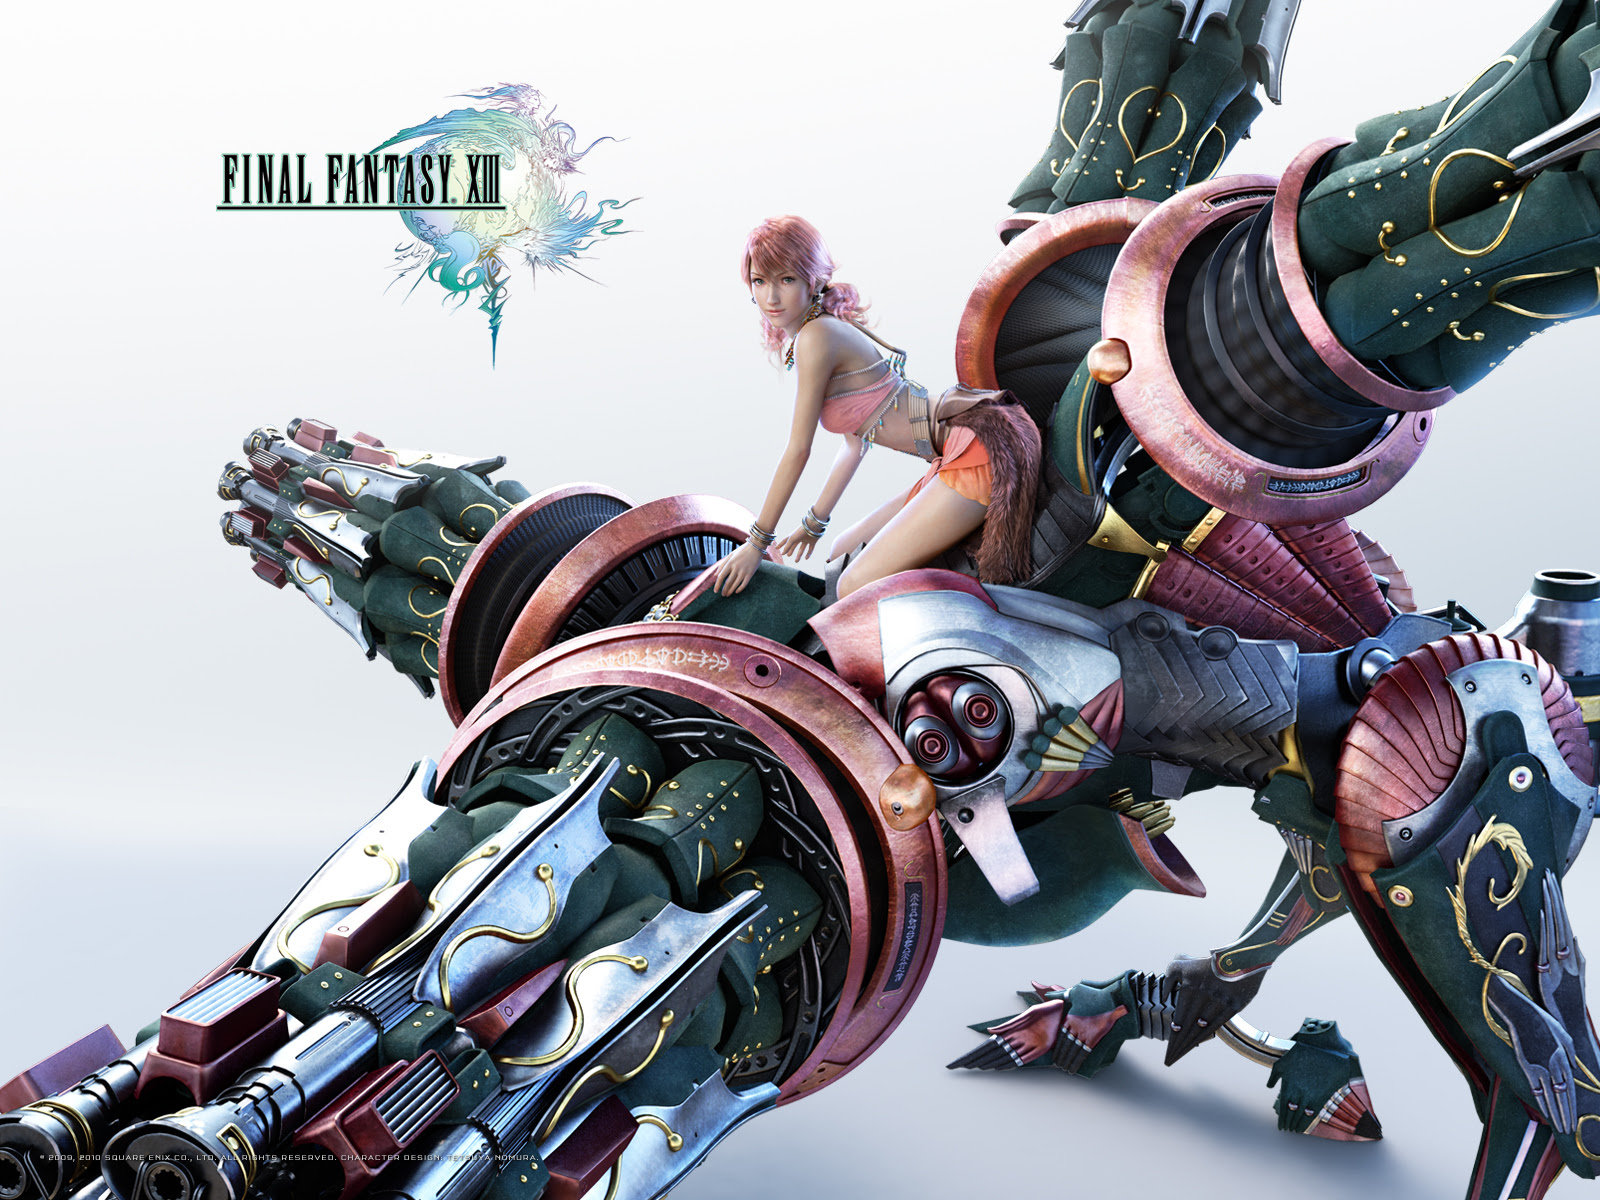 Ff Xiii Wallpaper Final Fantasy Xiii Wallpaper 32680101 Fanpop